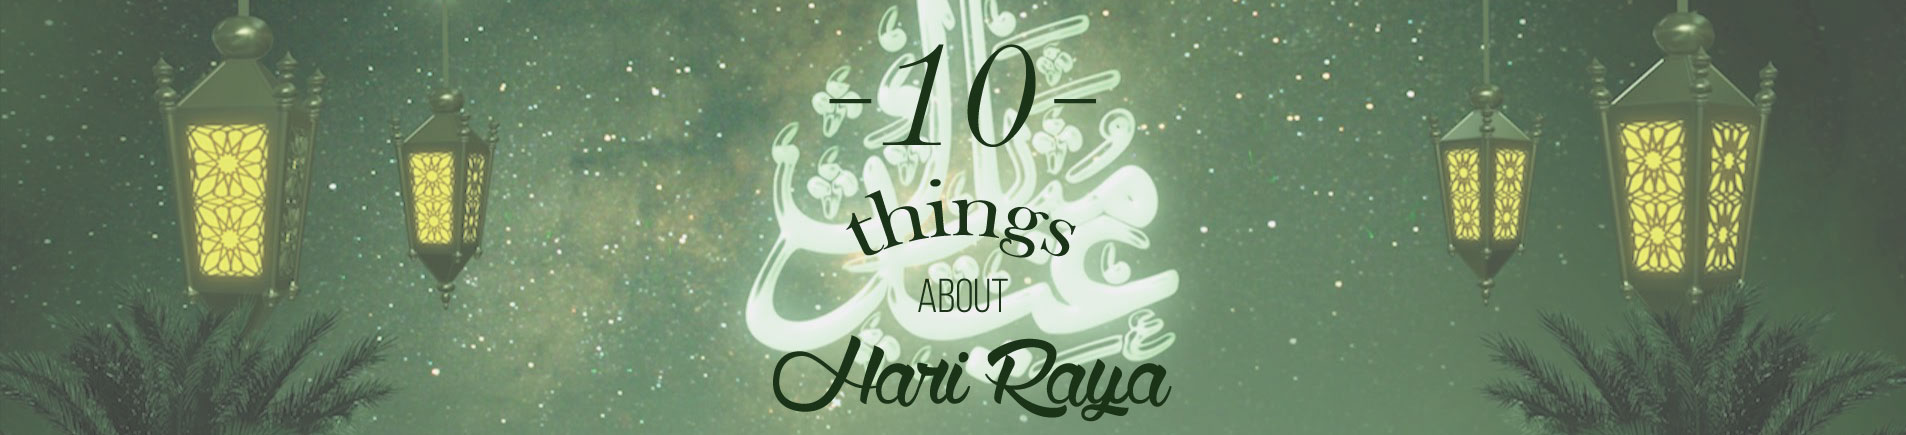 H10 Things about Hari Raya Every Singaporean Must Know